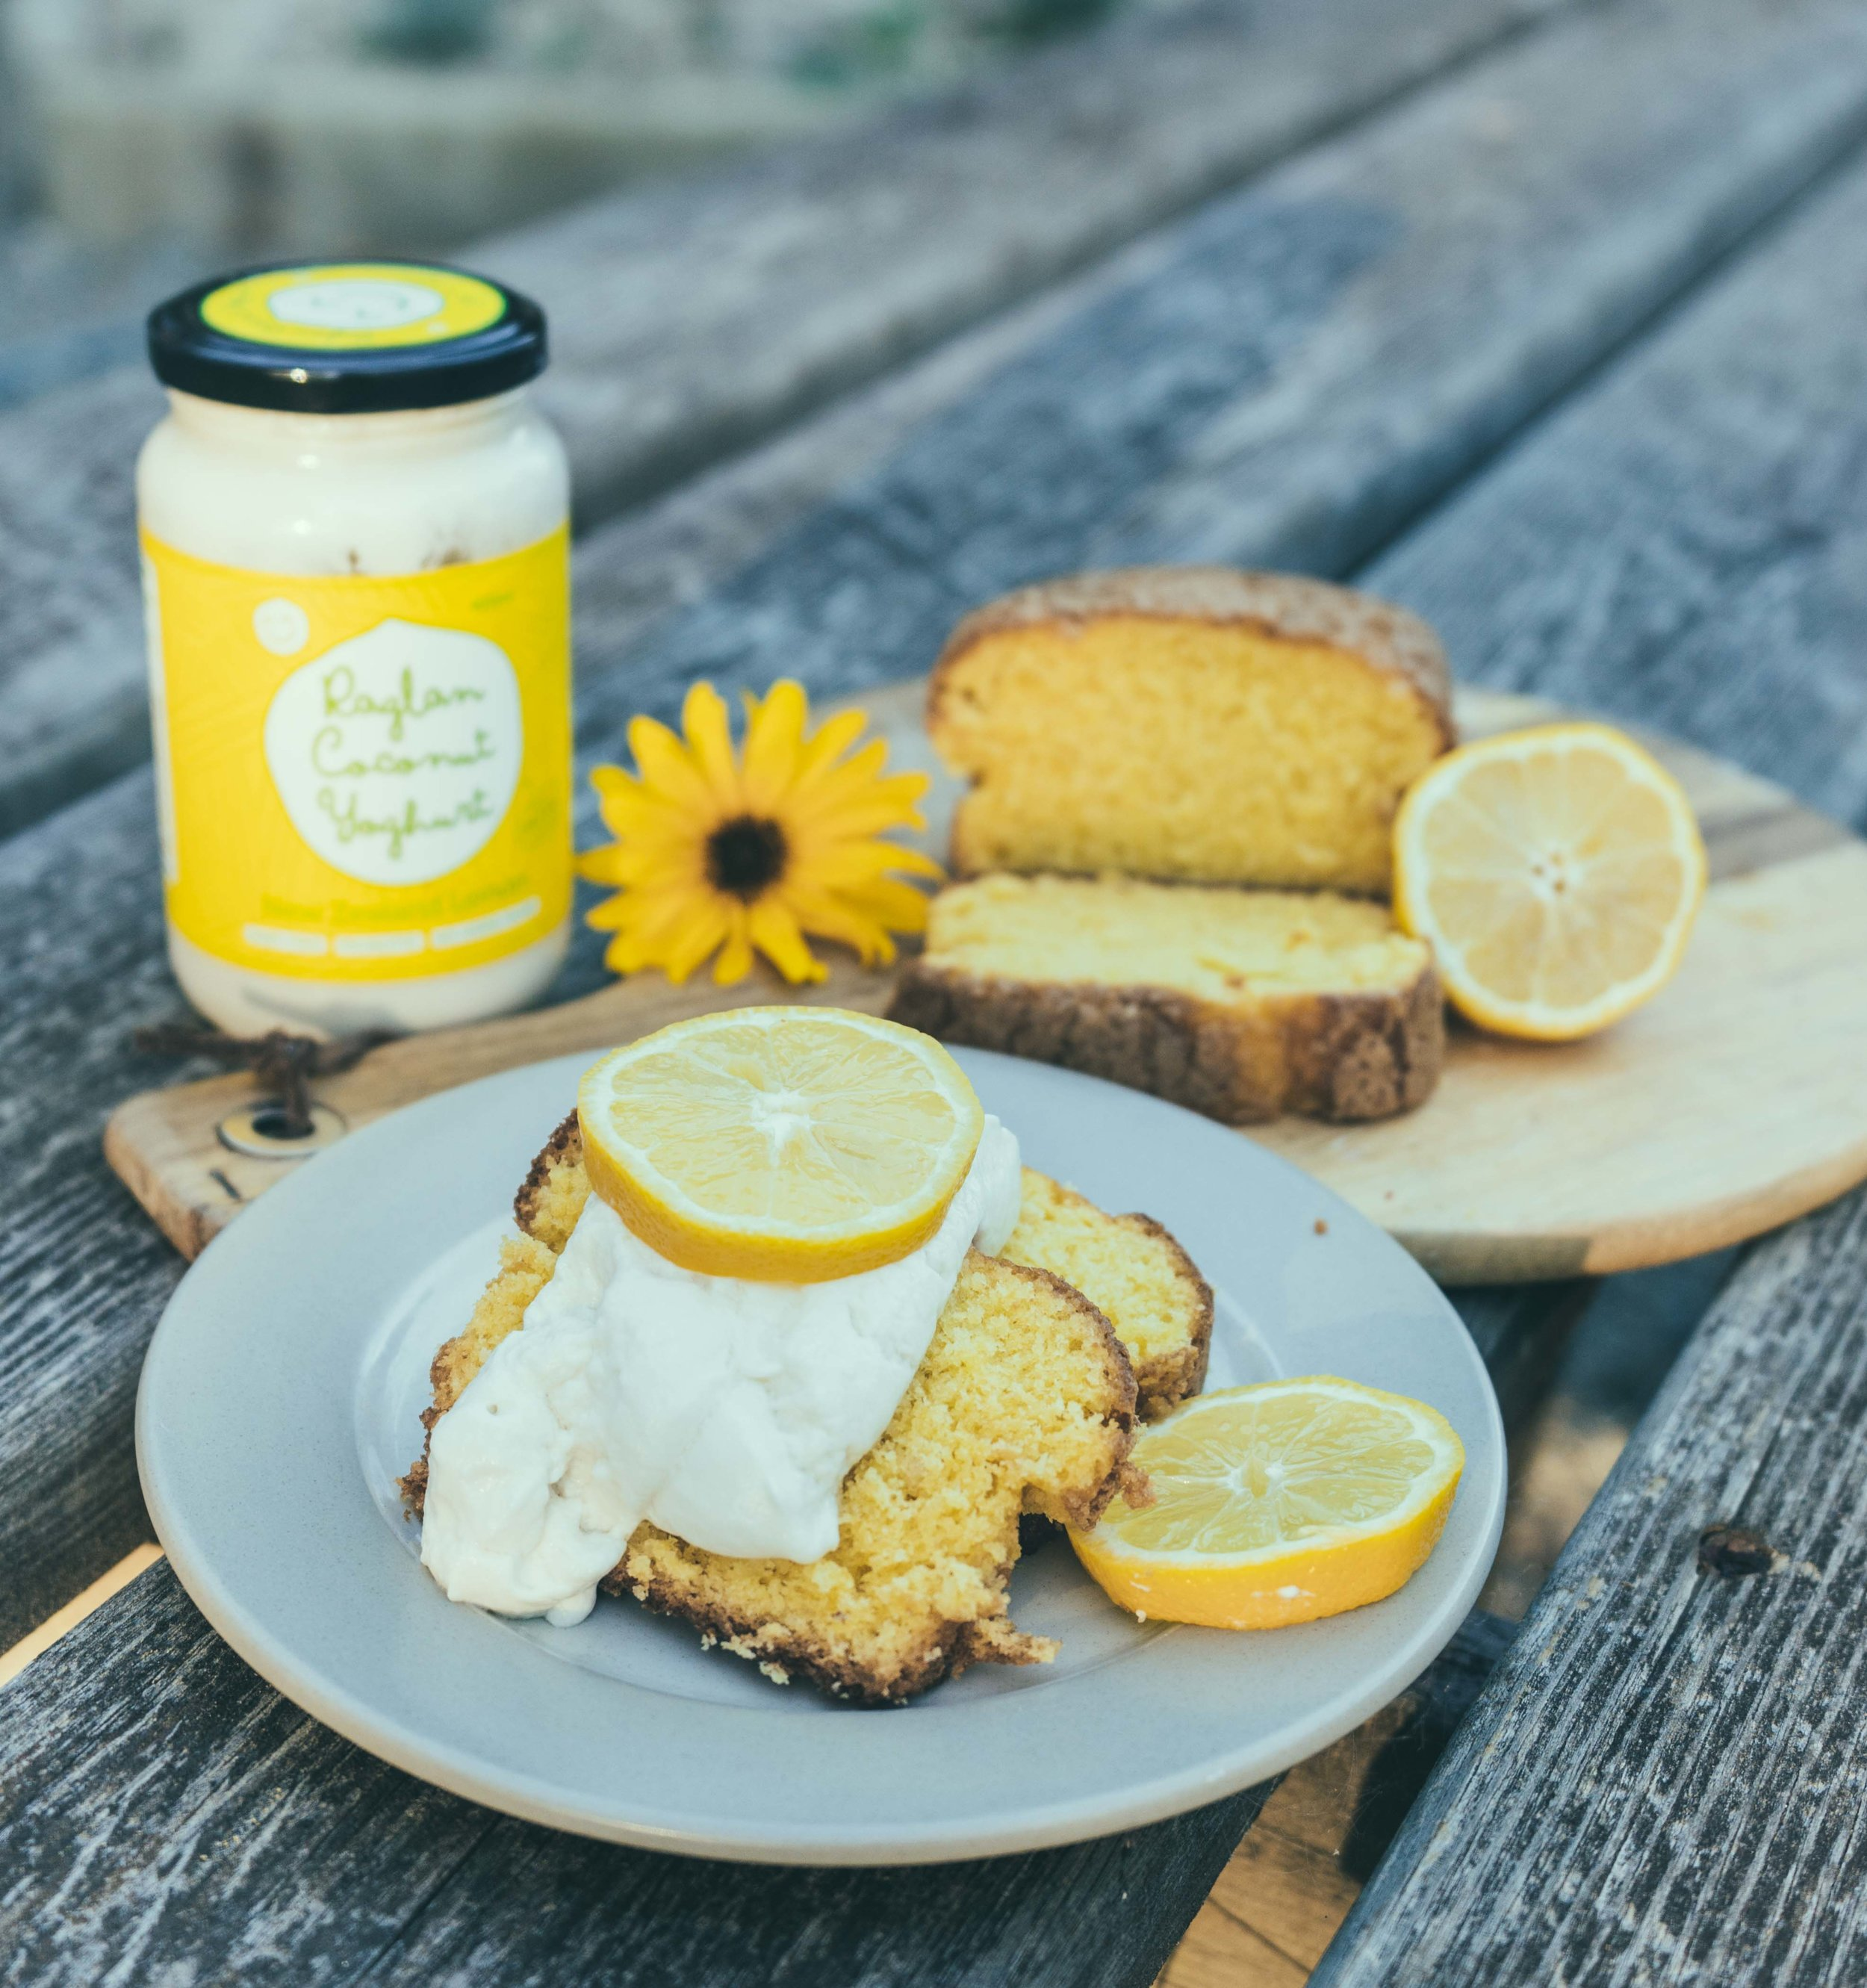 Vegan Lemon Bread topped with the Lemon Raglan Coconut Yoghurt